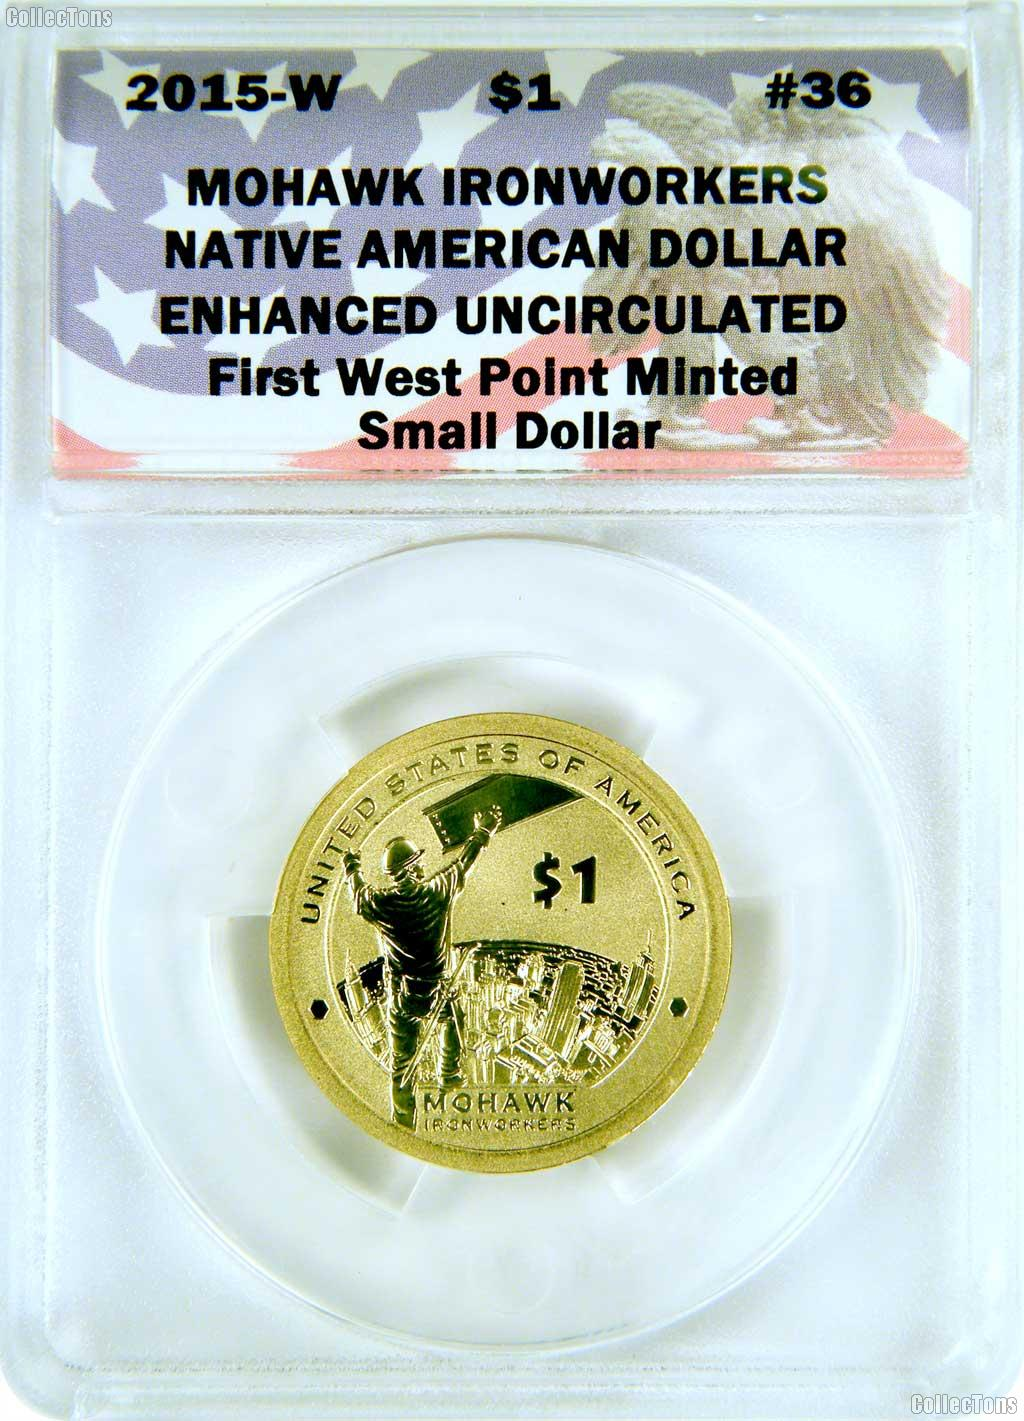 CollecTons Keepers #36: 2015-W Mohawk Ironworkers Native American Dollar Certified in Exclusive ANACS Enhanced Uncirculated Holder